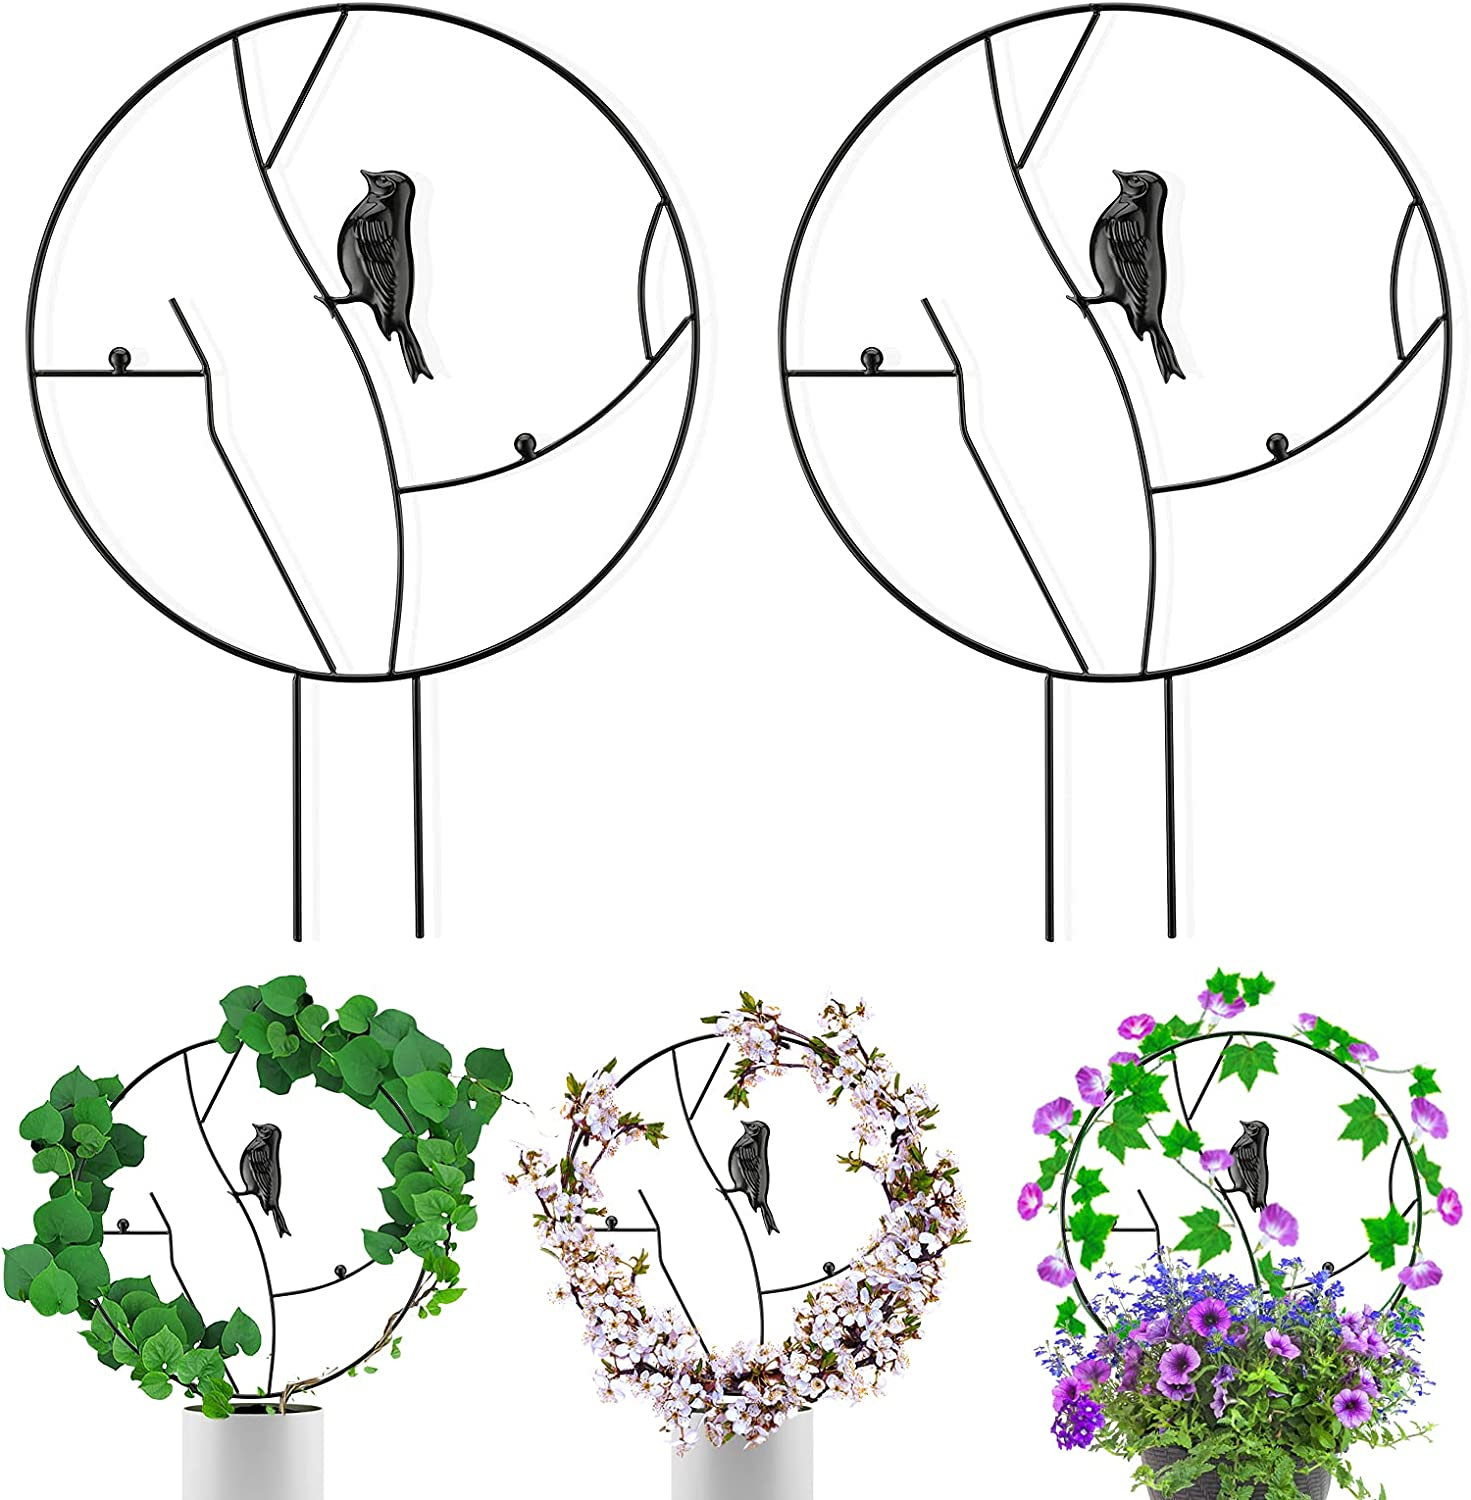 YASUOA 2 Pack Funny Garden Trellis, Black Coated Vine Plant Trellis, Metal Iron Round Shaped Garden Plant Support Stake Stand for DIY Potted Climbing Plants Flower Vegetables Vine Rack